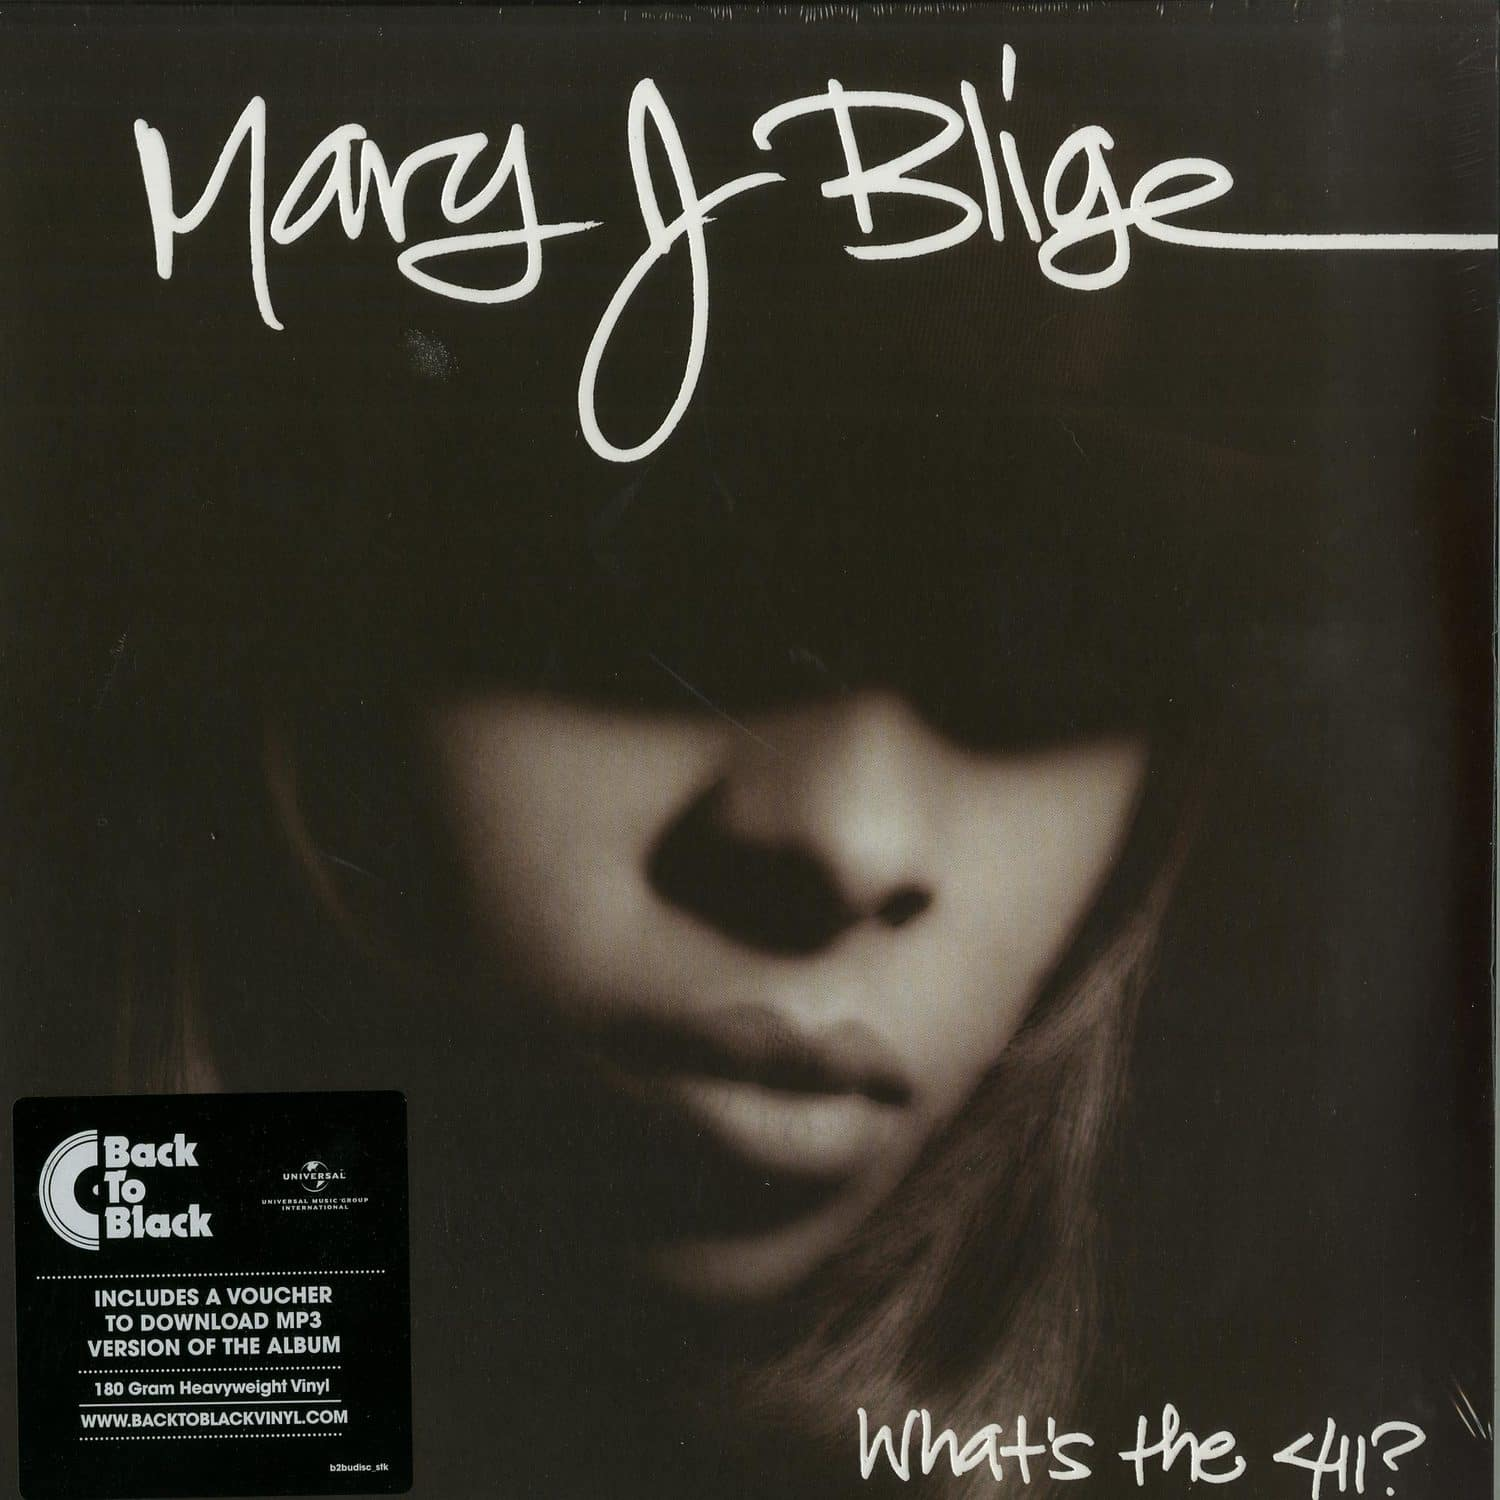 Mary J. Blige - WHATS THE 411?